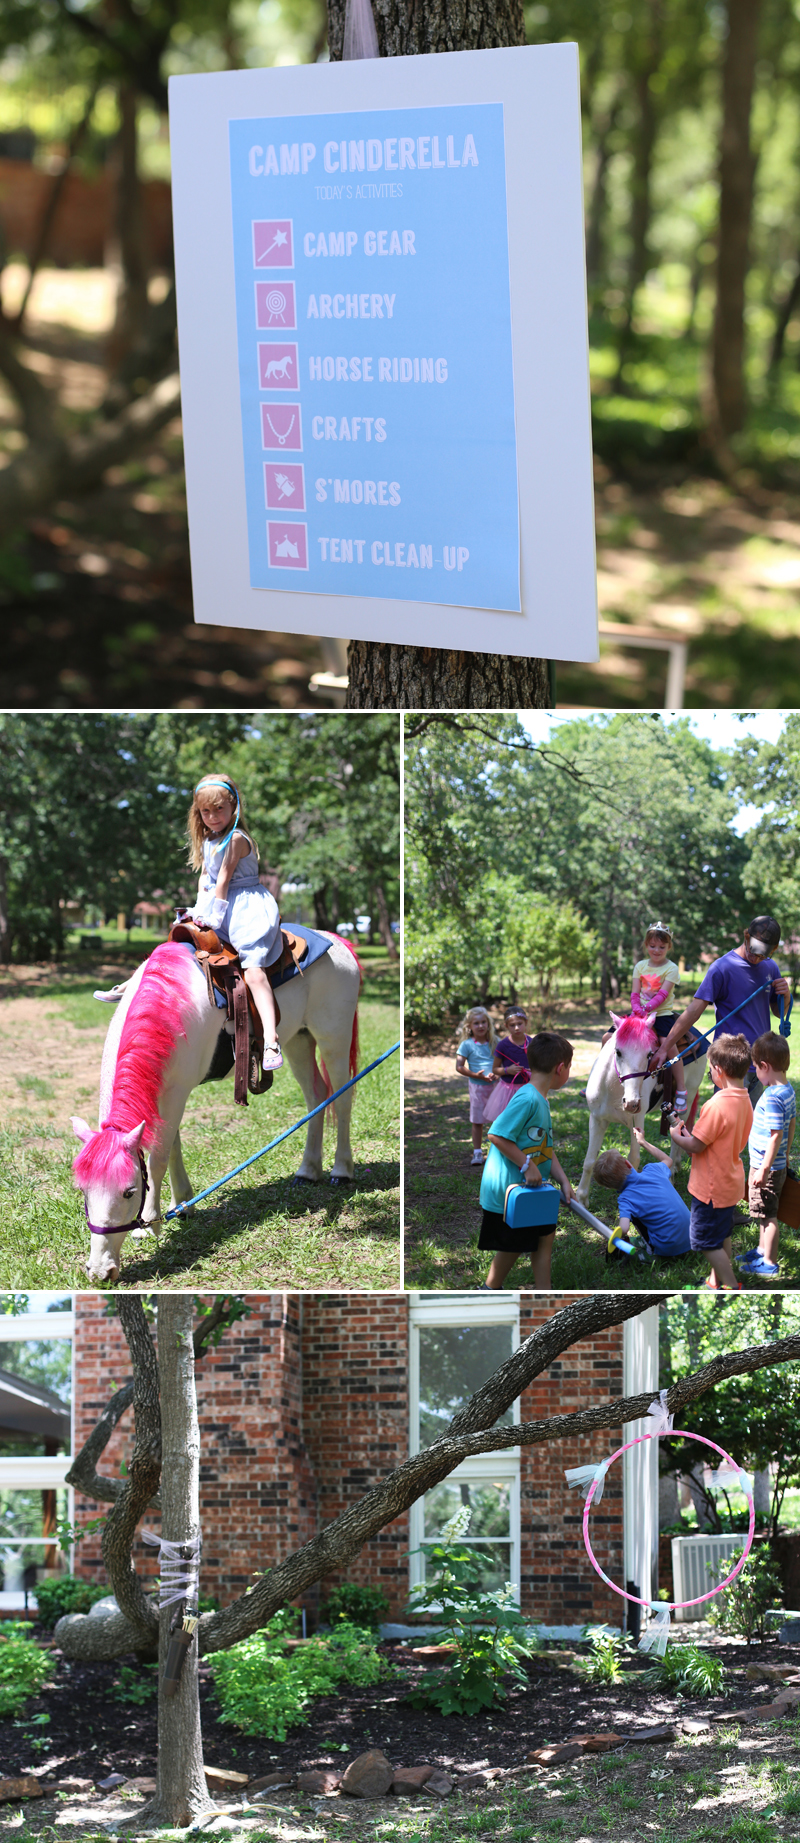 Camp Cinderella activities